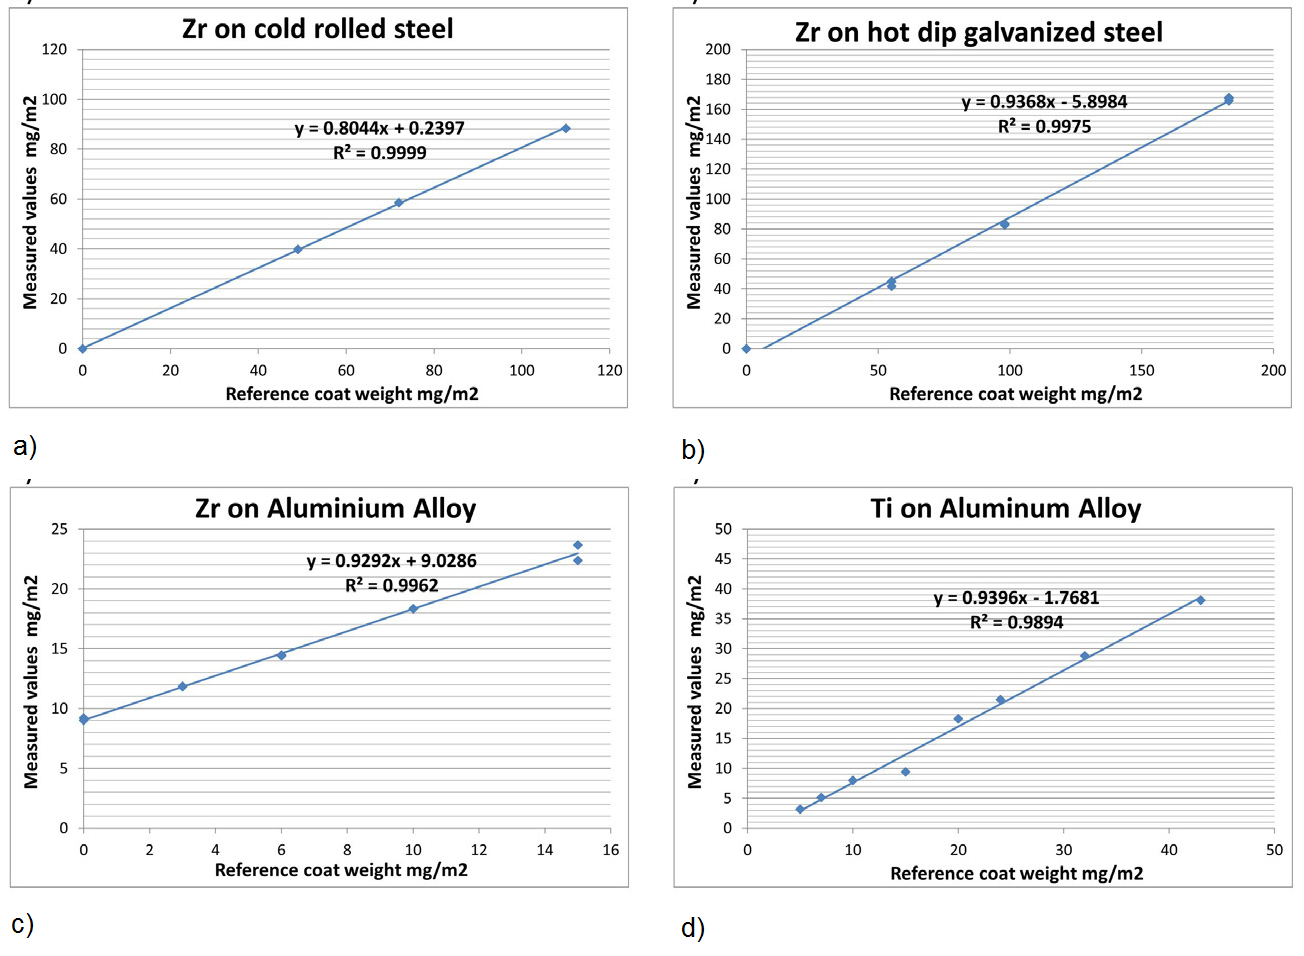 Correlation curves measured versus reference values obtained without any calibration adjustment for a) Zr over cold rolled steel, b) Zr over hot dip galvanized steel, c) Zr over aluminum (coating # 1), d) Ti over electro-galvanized steel, Ti over aluminum.